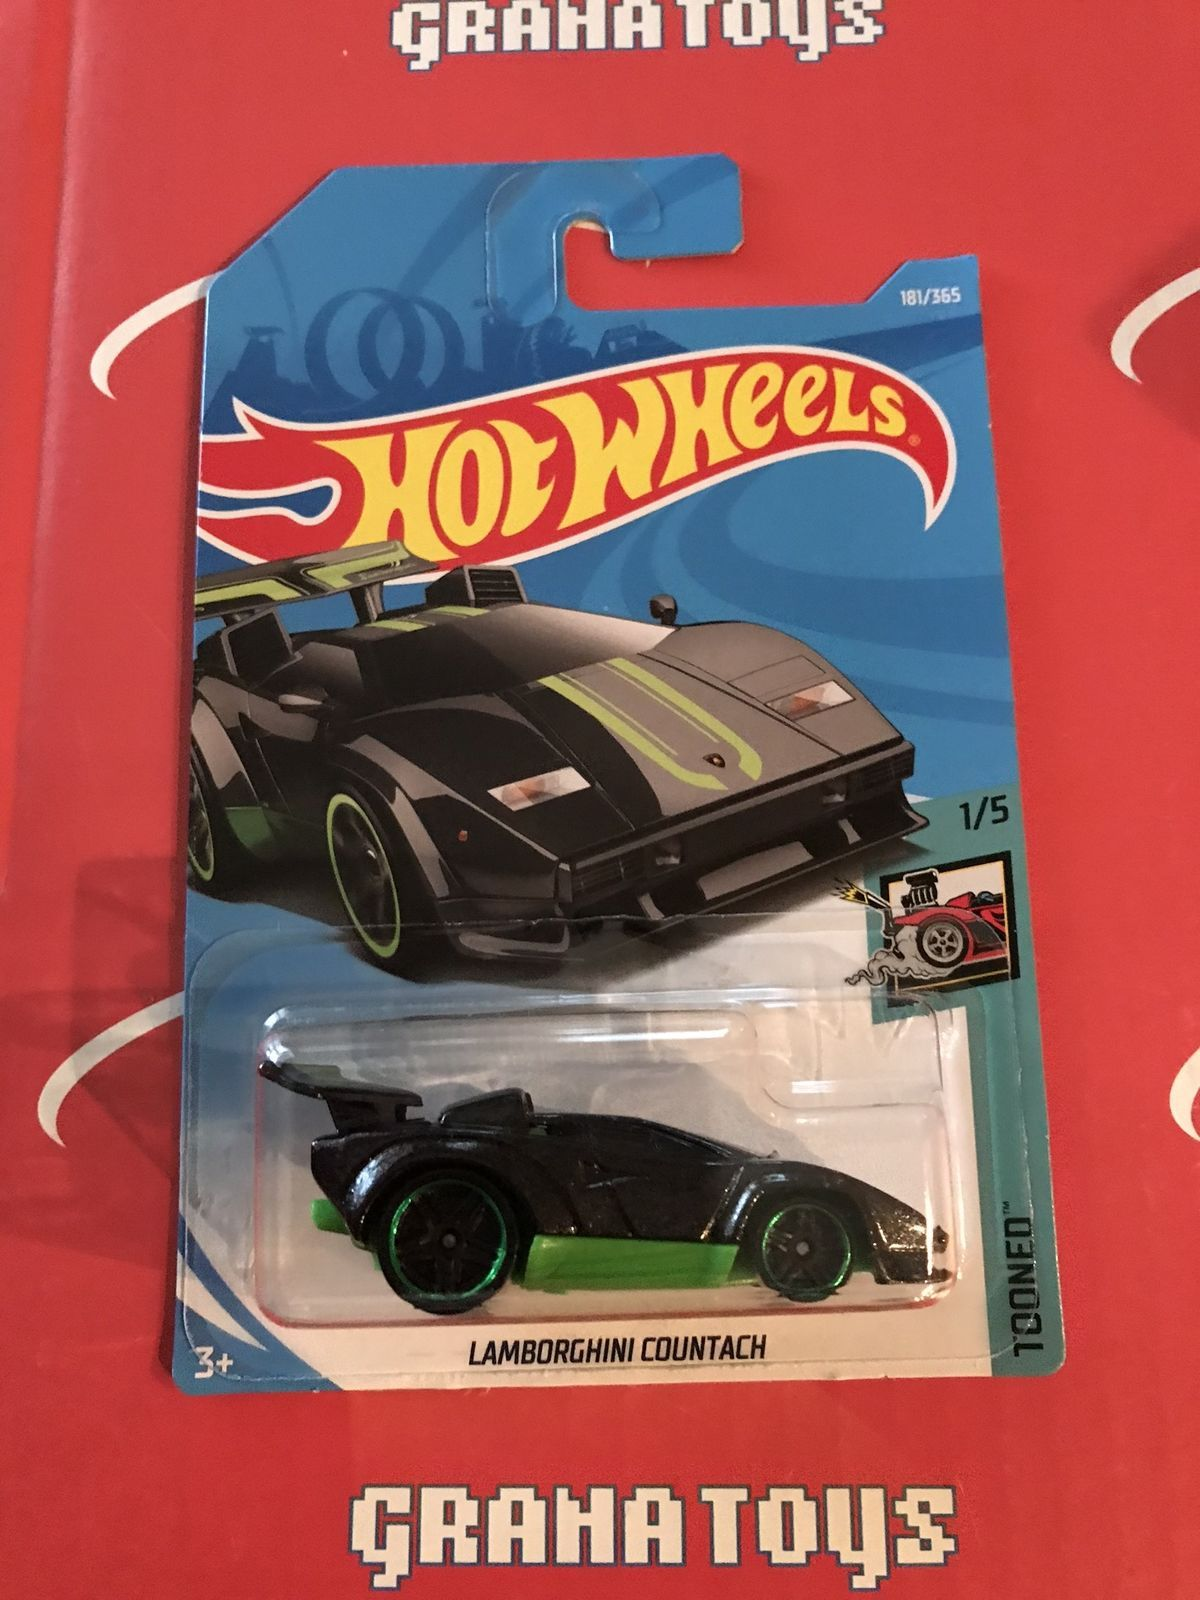 2018 Hot Wheels 2015 Ford Mustang Gt White Hw Speed Graph Hotwheels Toyota Ae 86 Corolla Red Lamborghini Countach 181 Black Green Tooned Case H